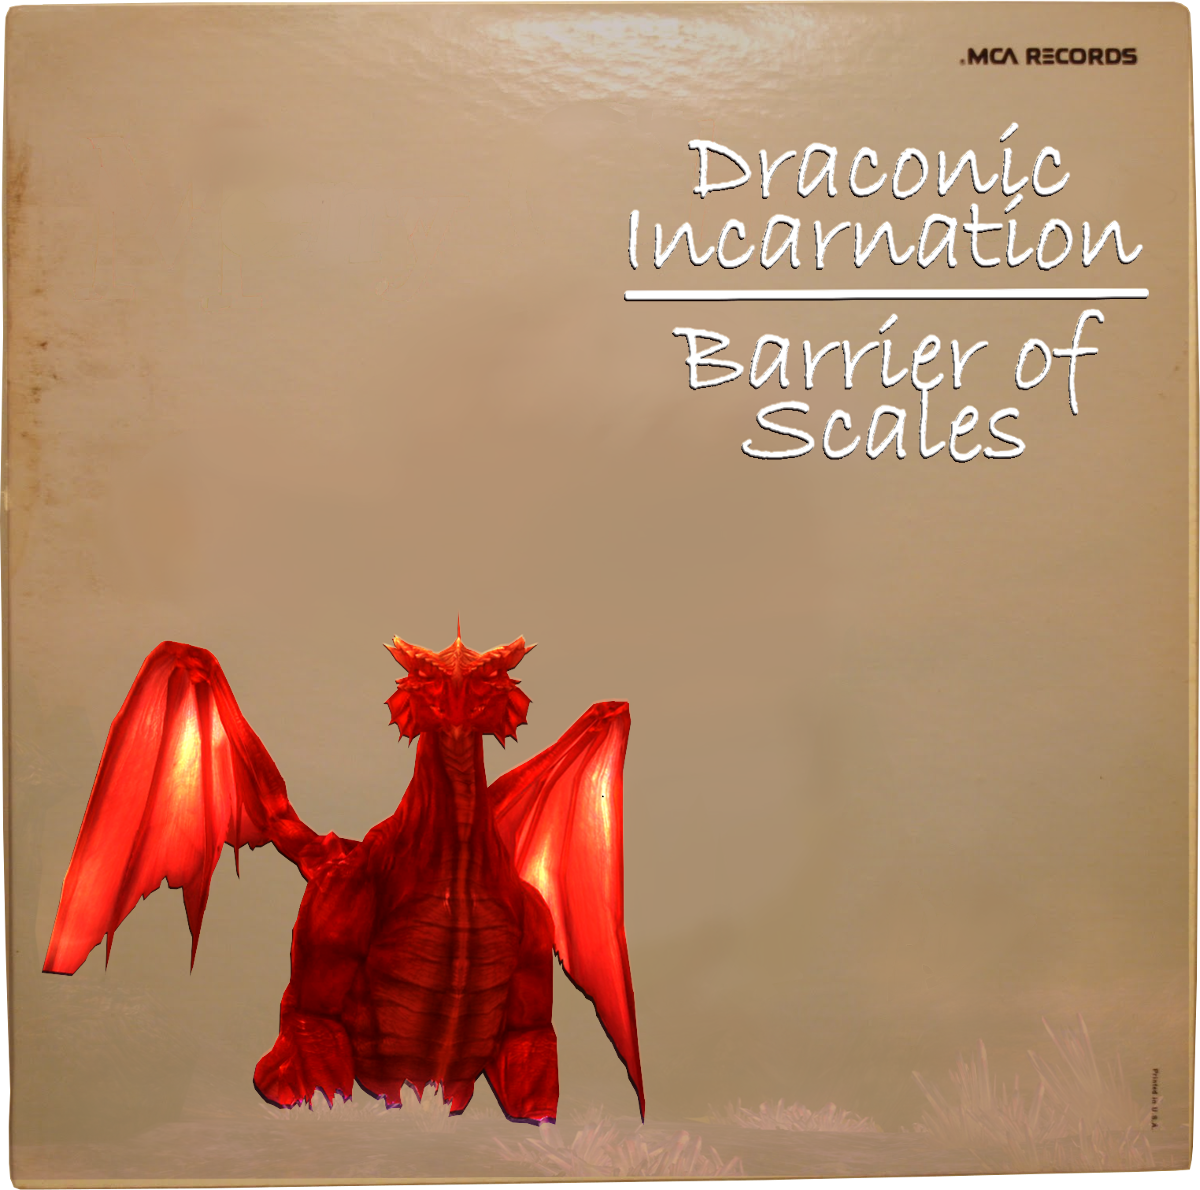 Draconic Incarnation - Barrier of Scales